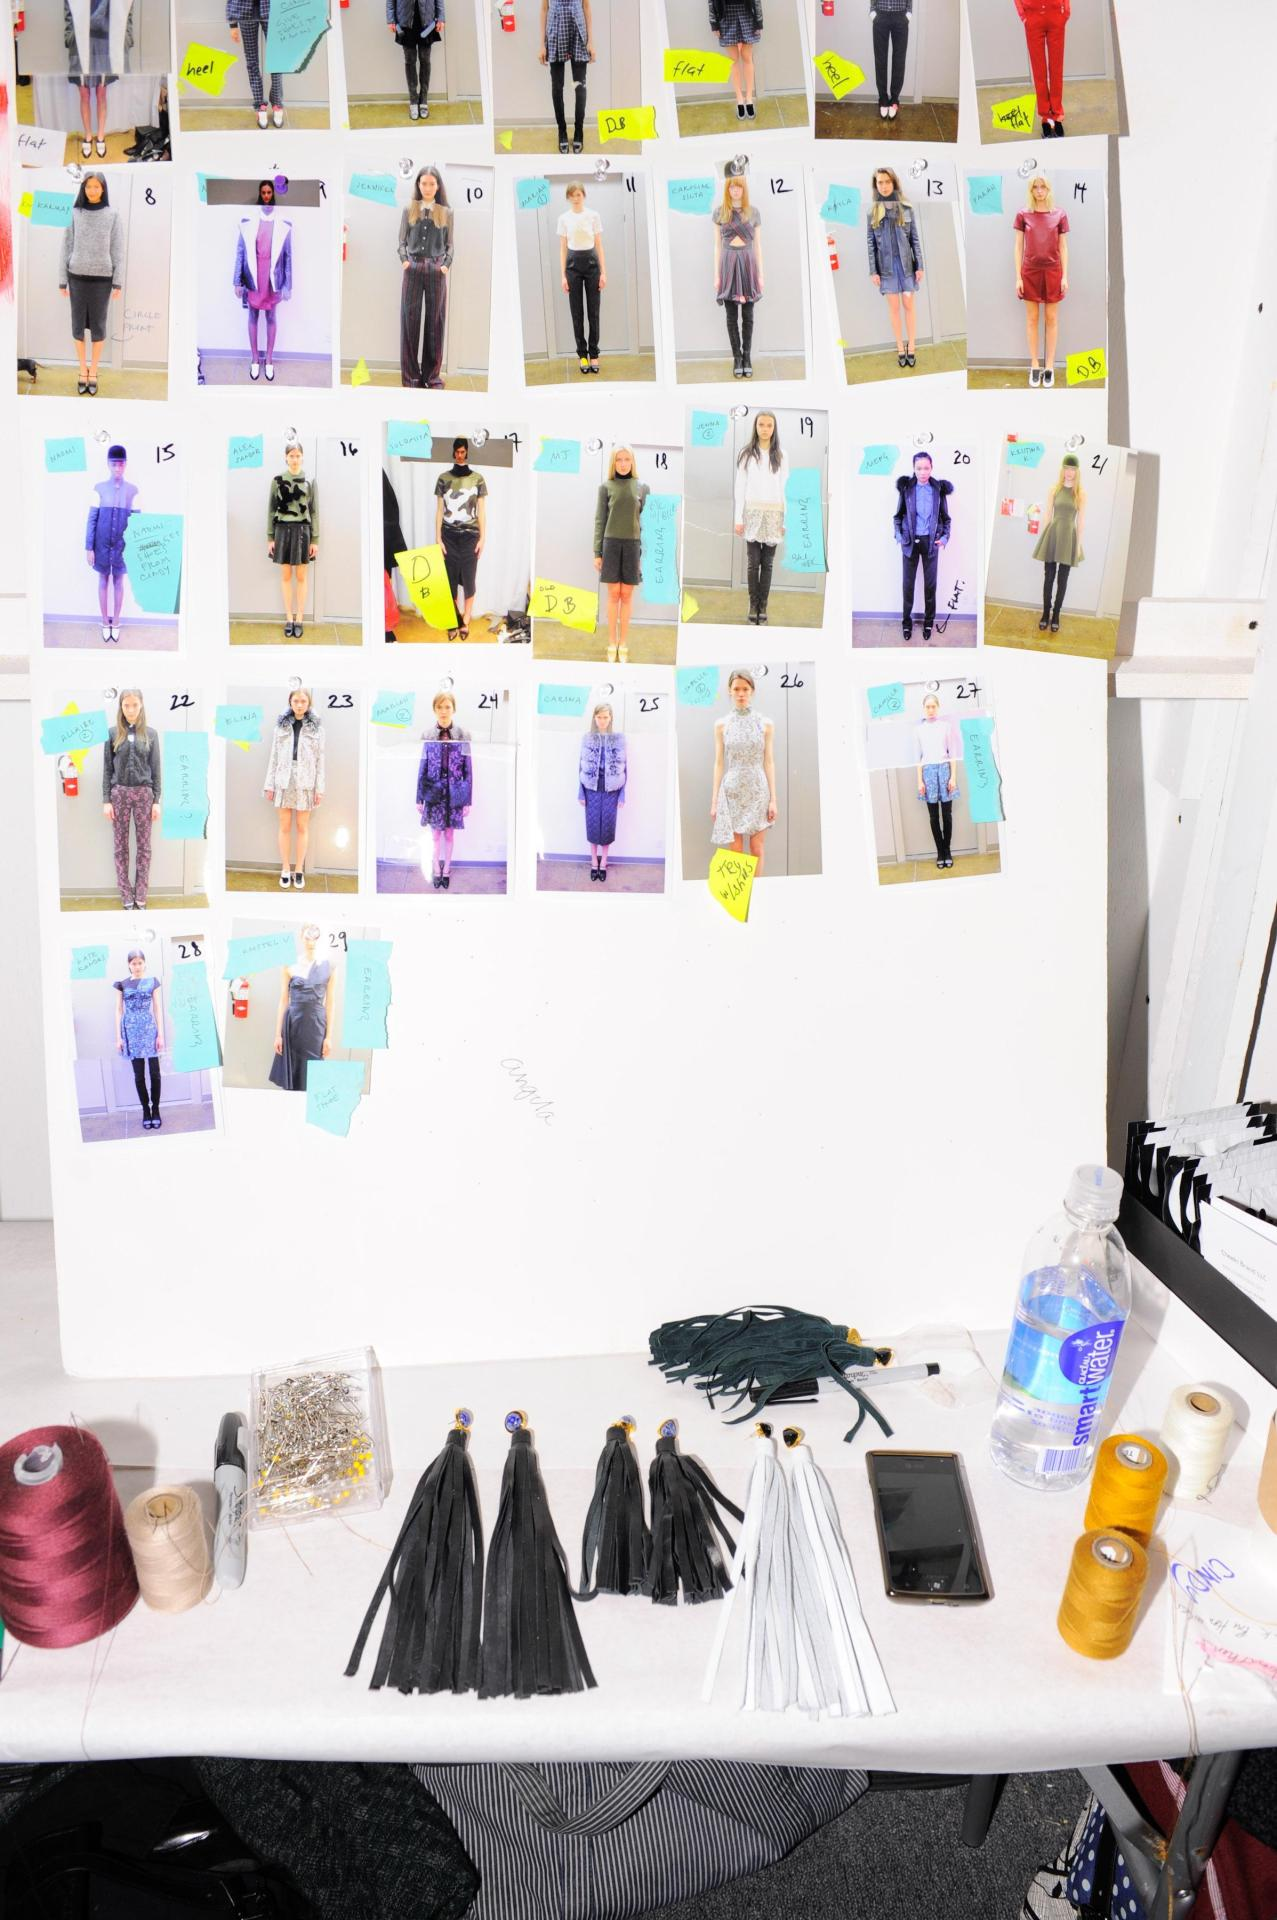 Backstage at Timo Weiland Spotted before the Timo Weiland Fall 2013 Show at Lincoln Center was a table of all the glorious looks and show essentials, including Cheeki products who sponsored the event. One of the items each model wore was a pair of Philippe Matignon stockings. We found a few of this brands stockings available on eBay in case you care to emulate the gorgeous women from this presentation.  (Photo Credits: Dean Neville/BFAnyc.com. Text by Jauretsi)